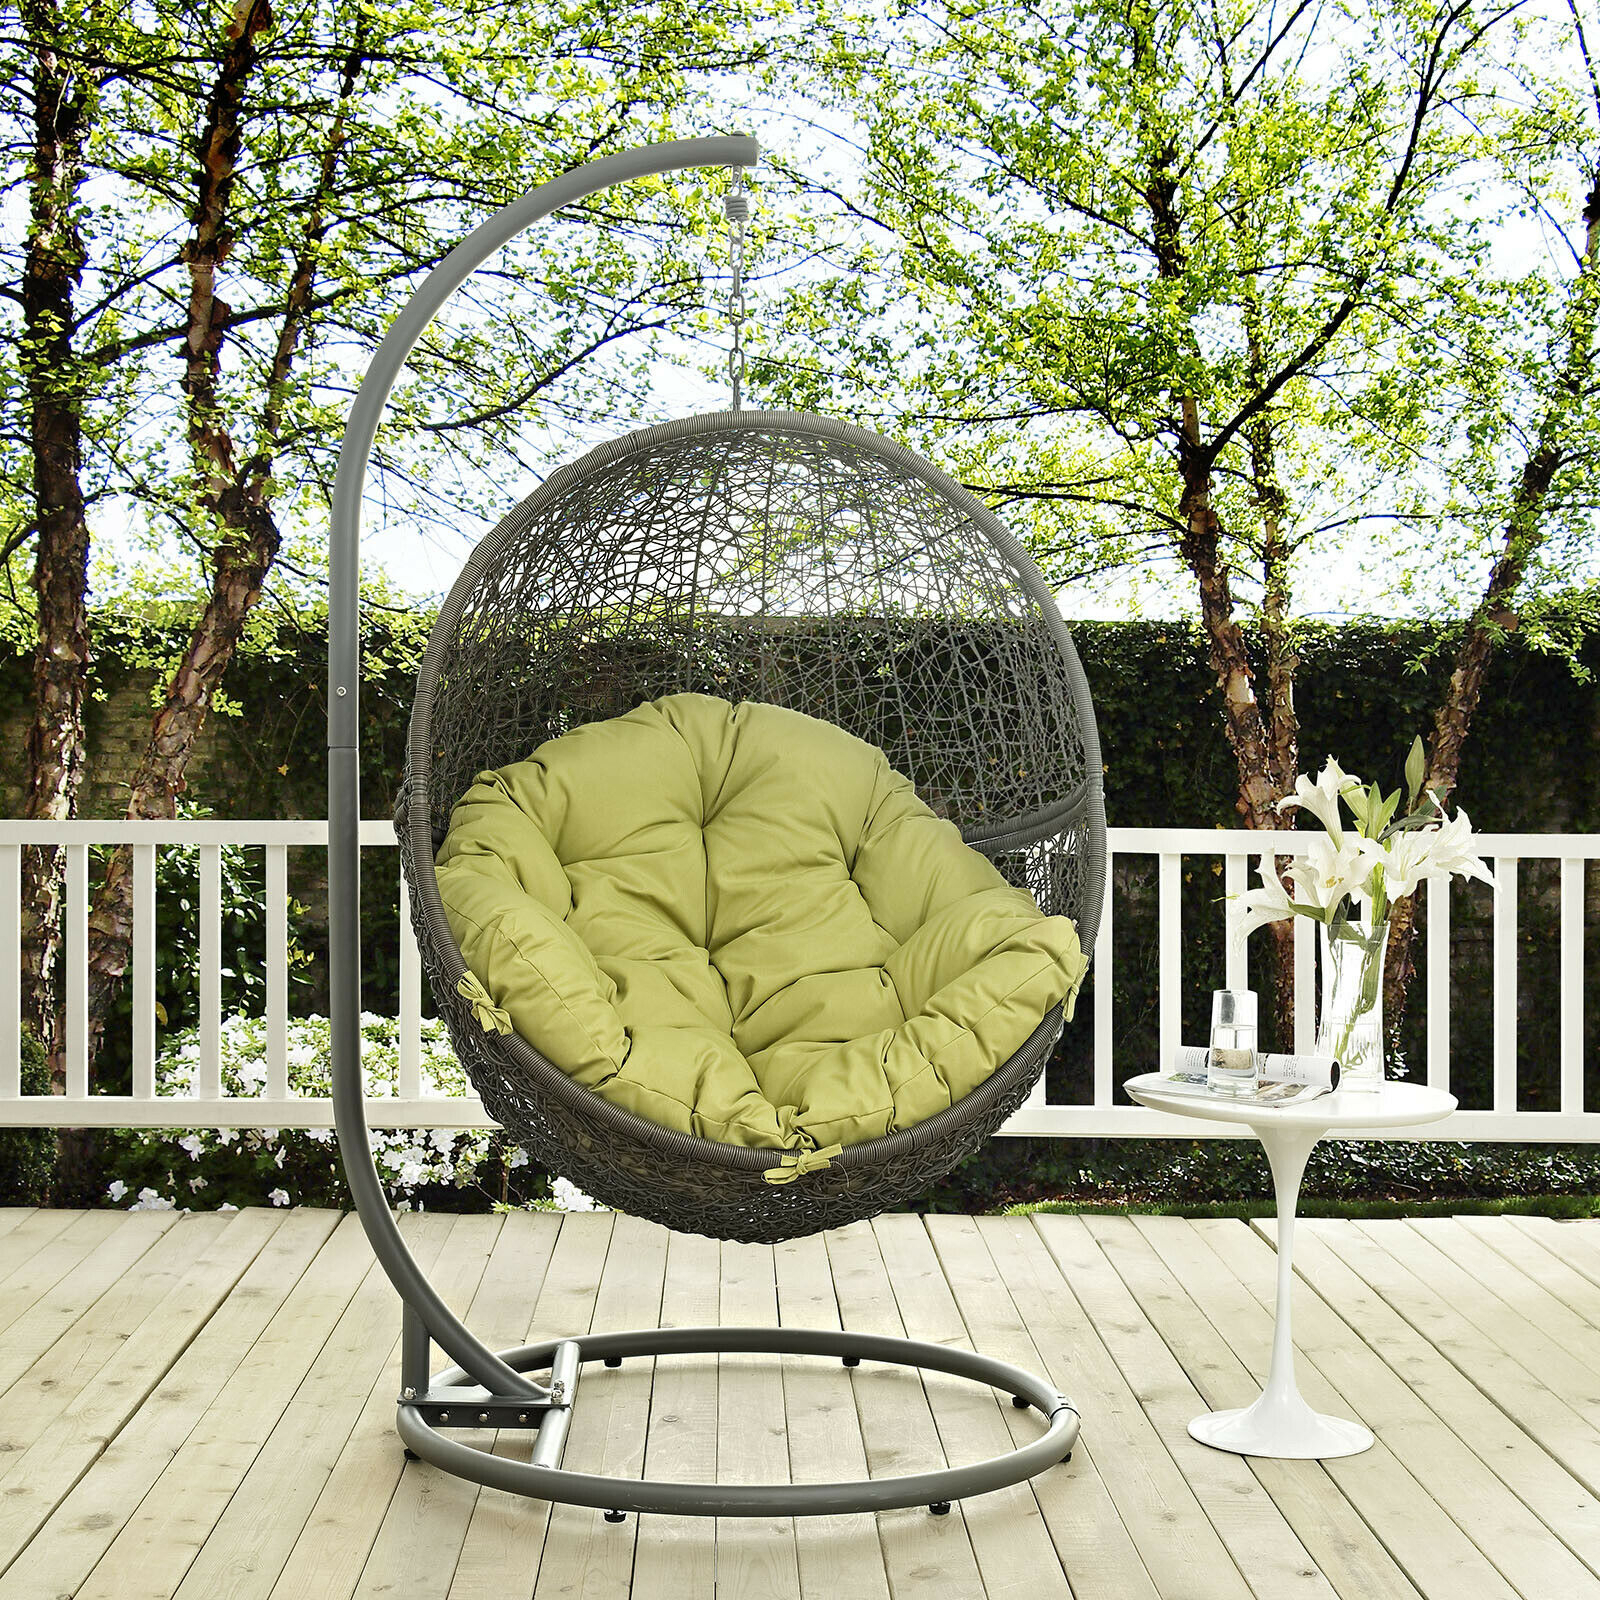 Details About Wicker Rattan Outdoor Patio Hanging Swing Porch Chair W/ Stand In Gray Peridot In Wicker Glider Outdoor Porch Swings With Stand (View 7 of 25)